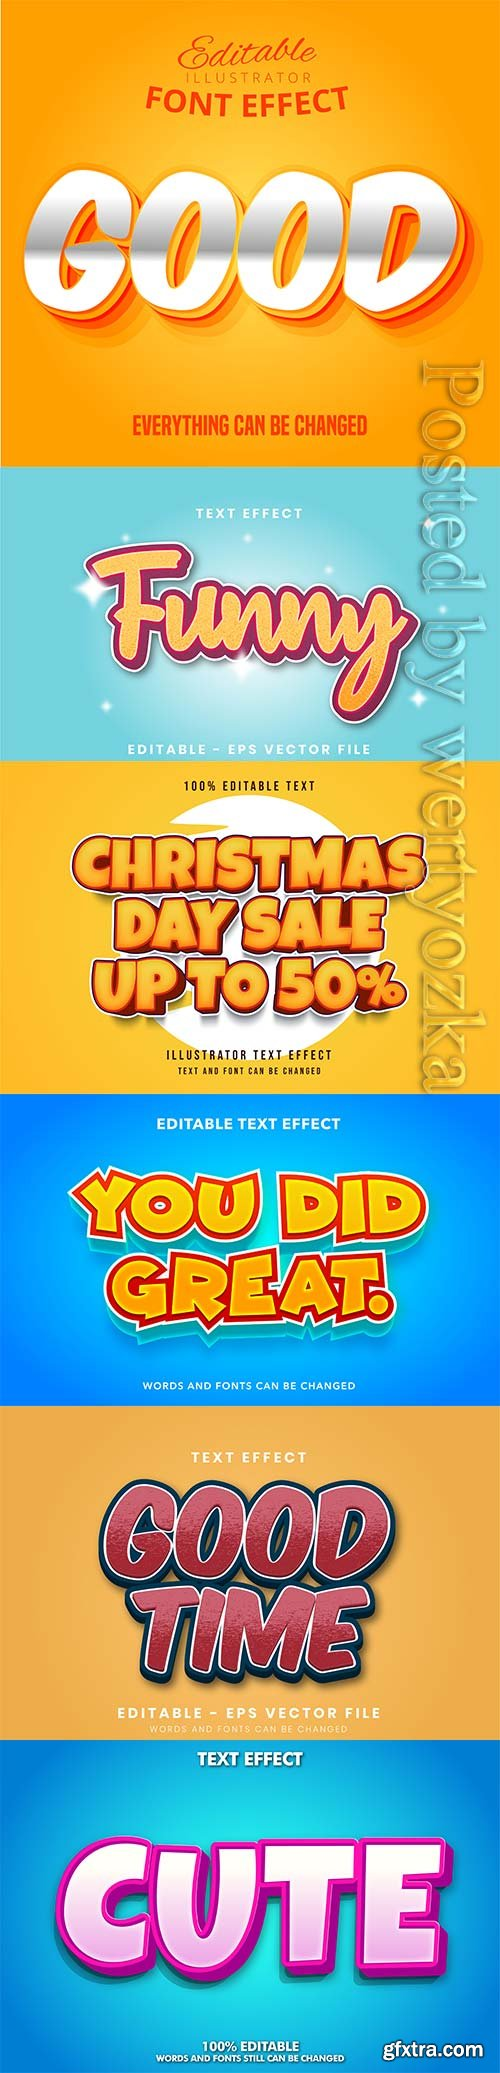 3d editable text style effect vector vol 300